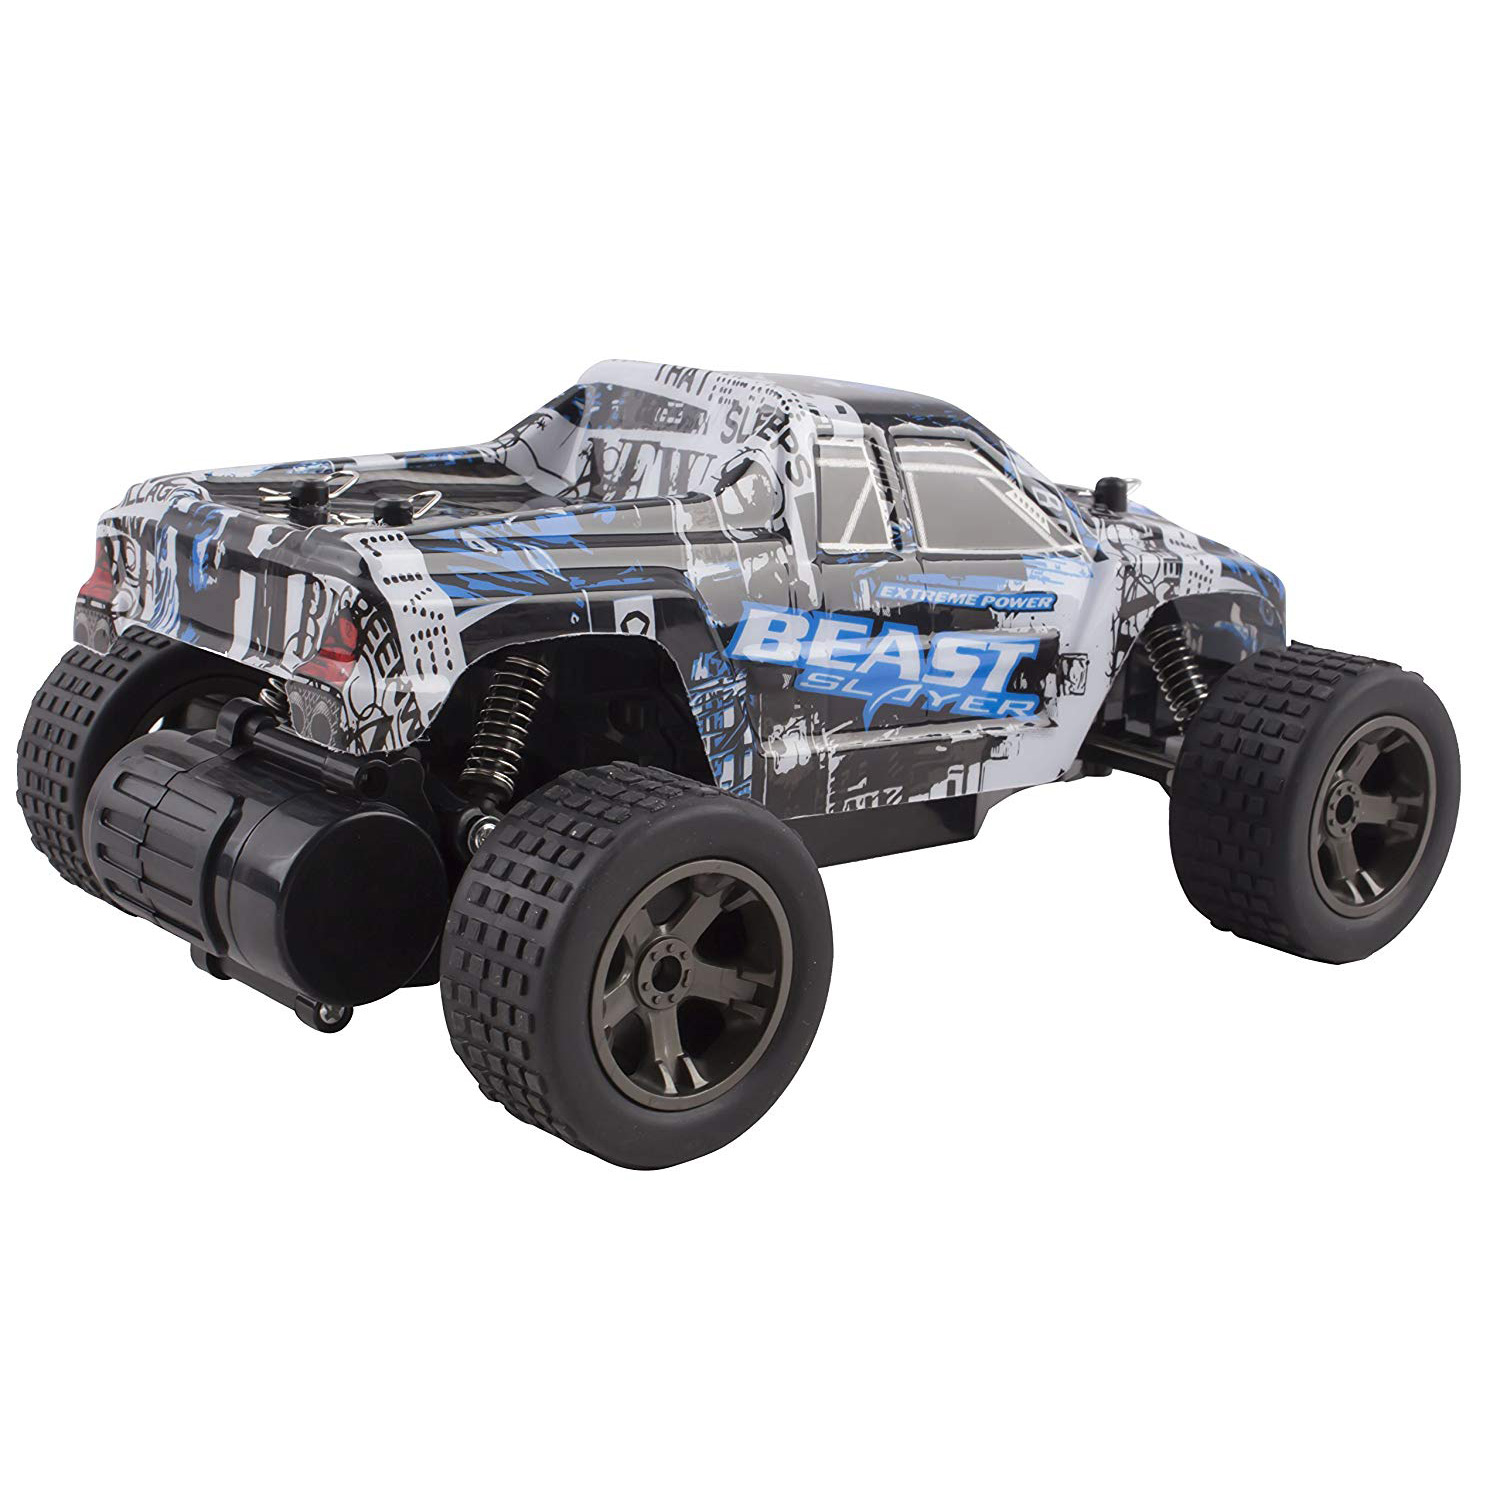 Remote control RC truck off road off-road high speed